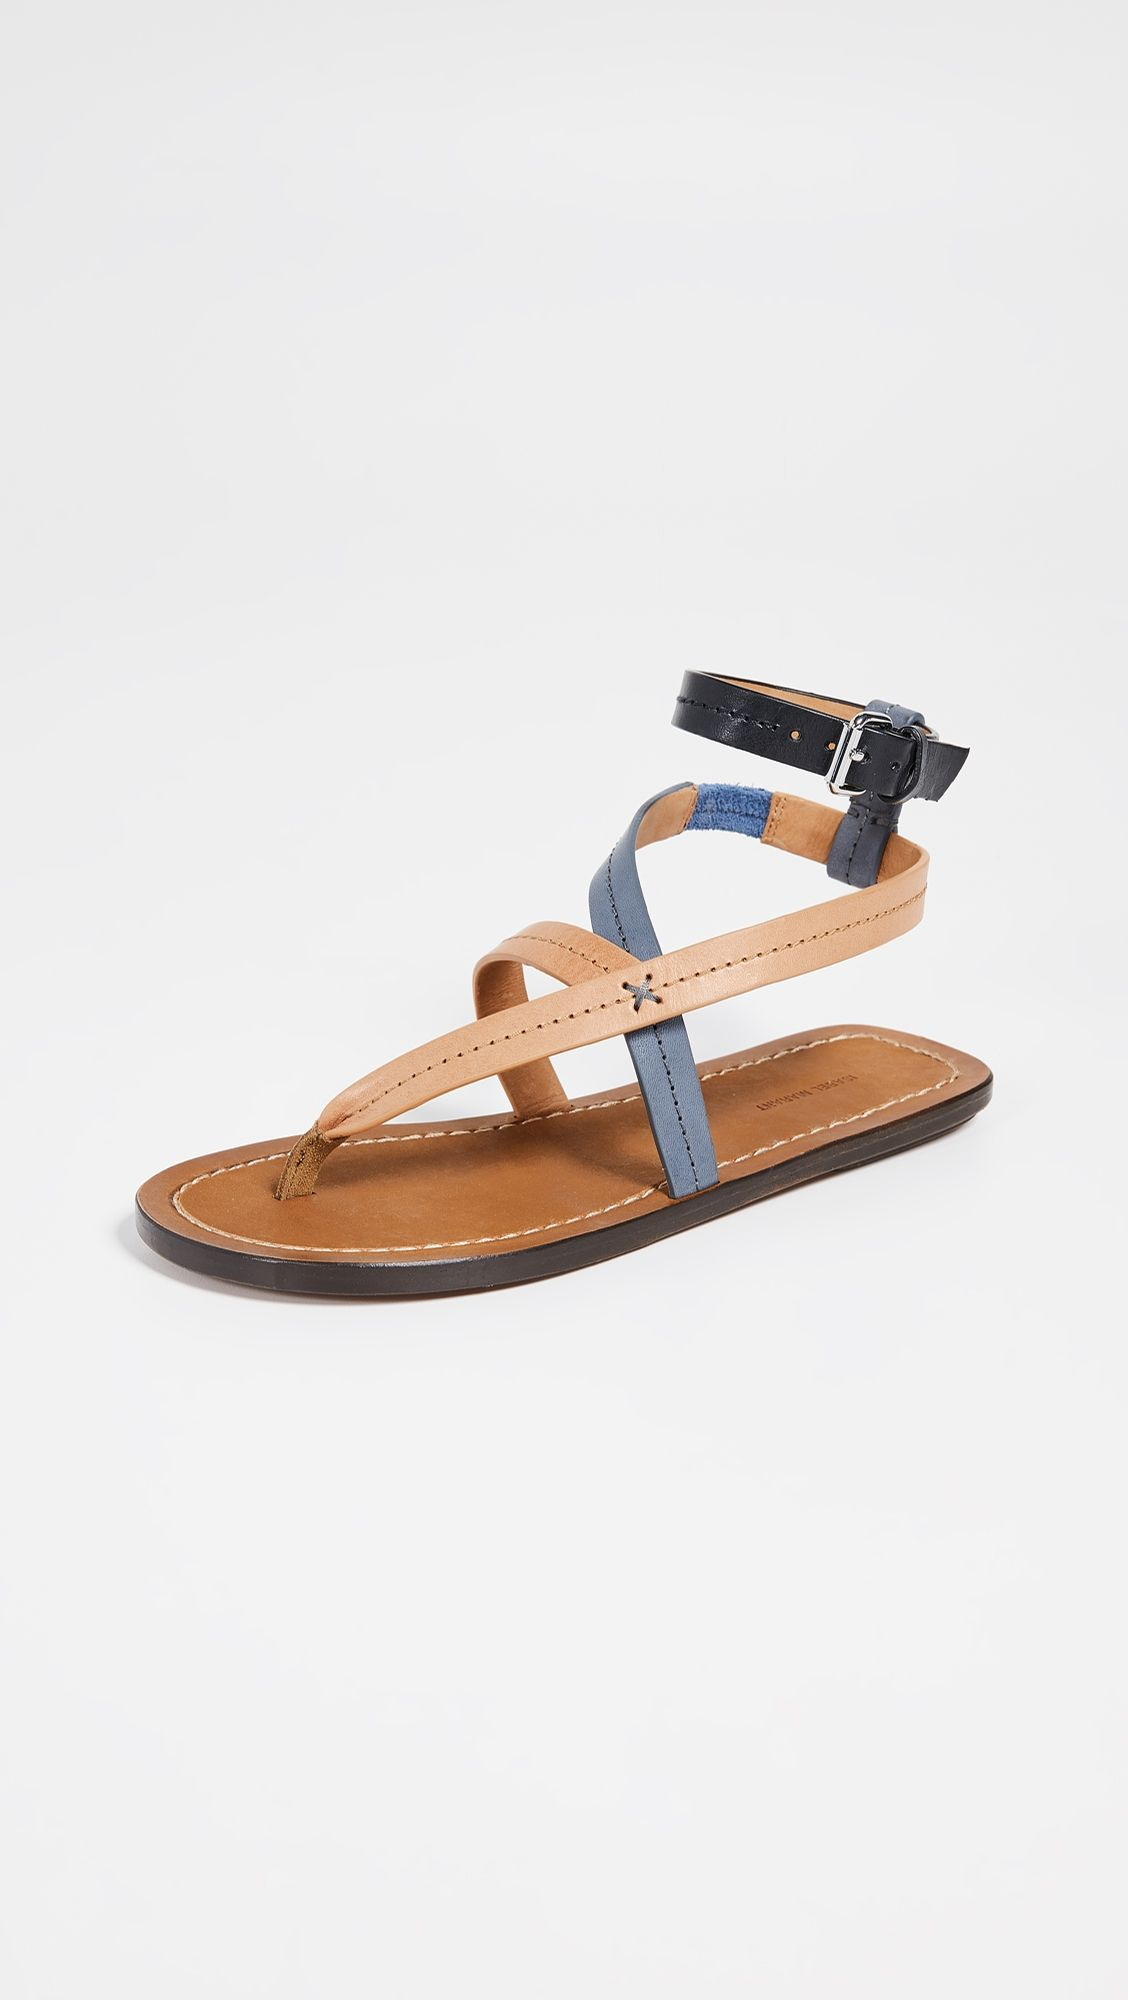 6ba9dbd2f Jookee Sandals in 2019   Products   Isabel marant, Sandals, Shoes